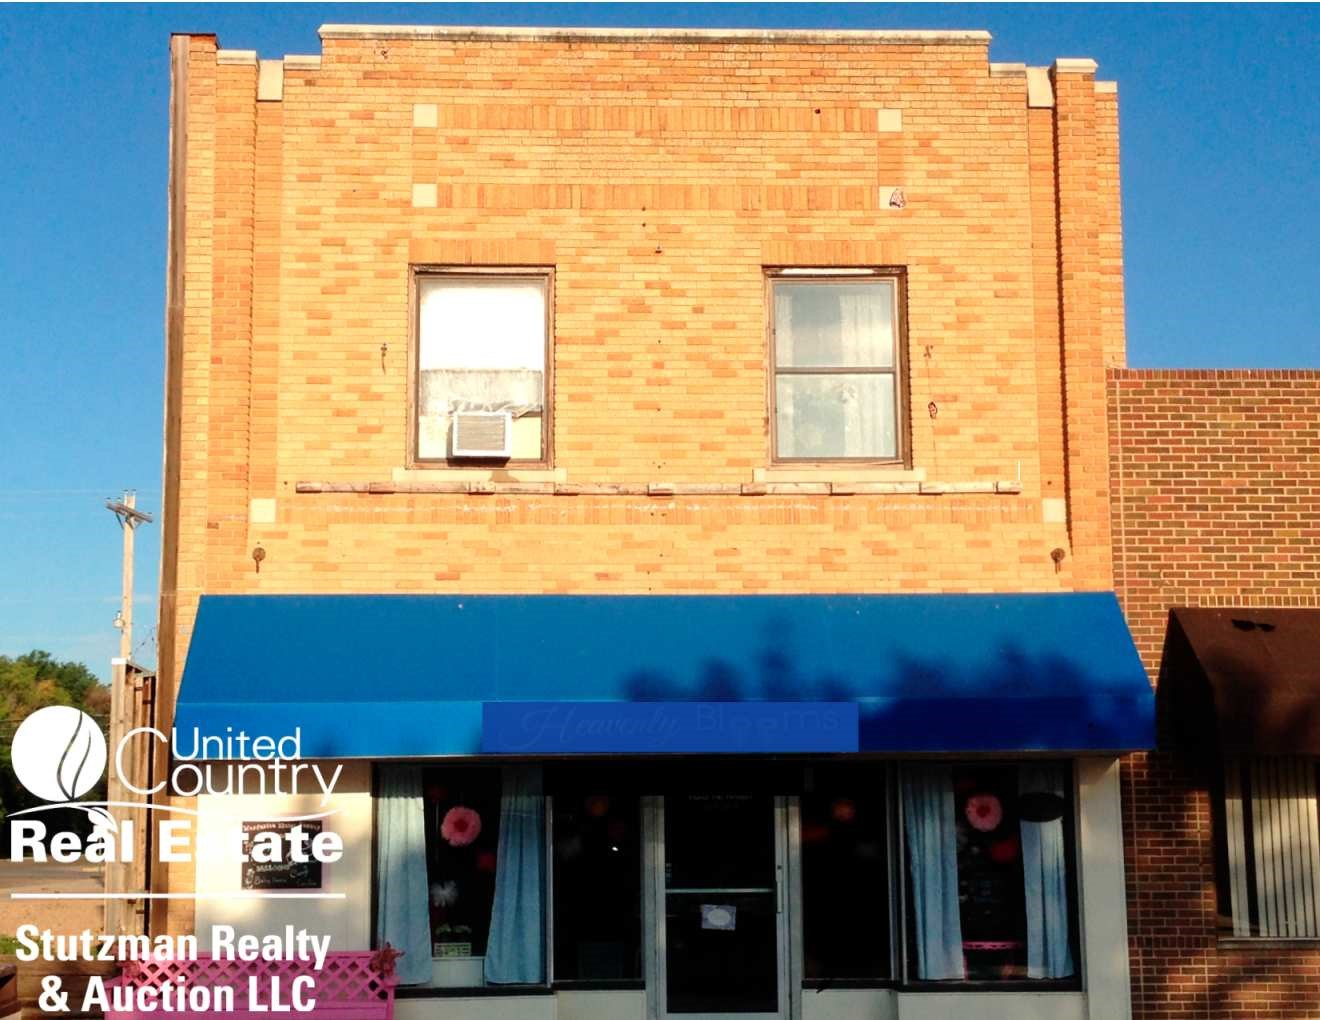 COMMERCIAL PROPERTY FOR SALE IN SOUTHWEST KANSAS